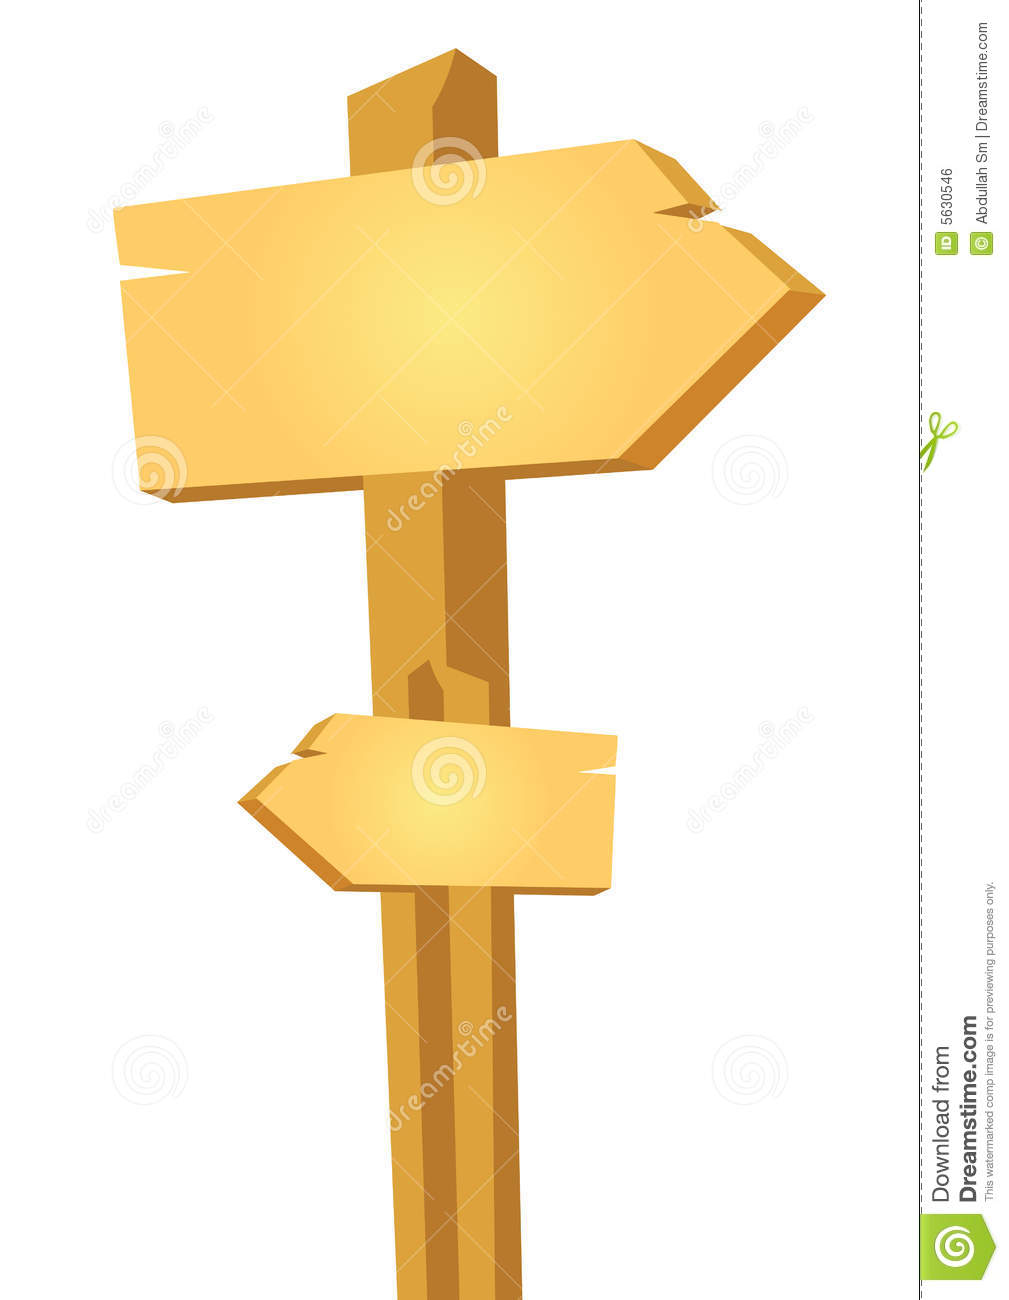 Wooden Way Board - Vector Royalty Free Stock Image - Image: 5630546